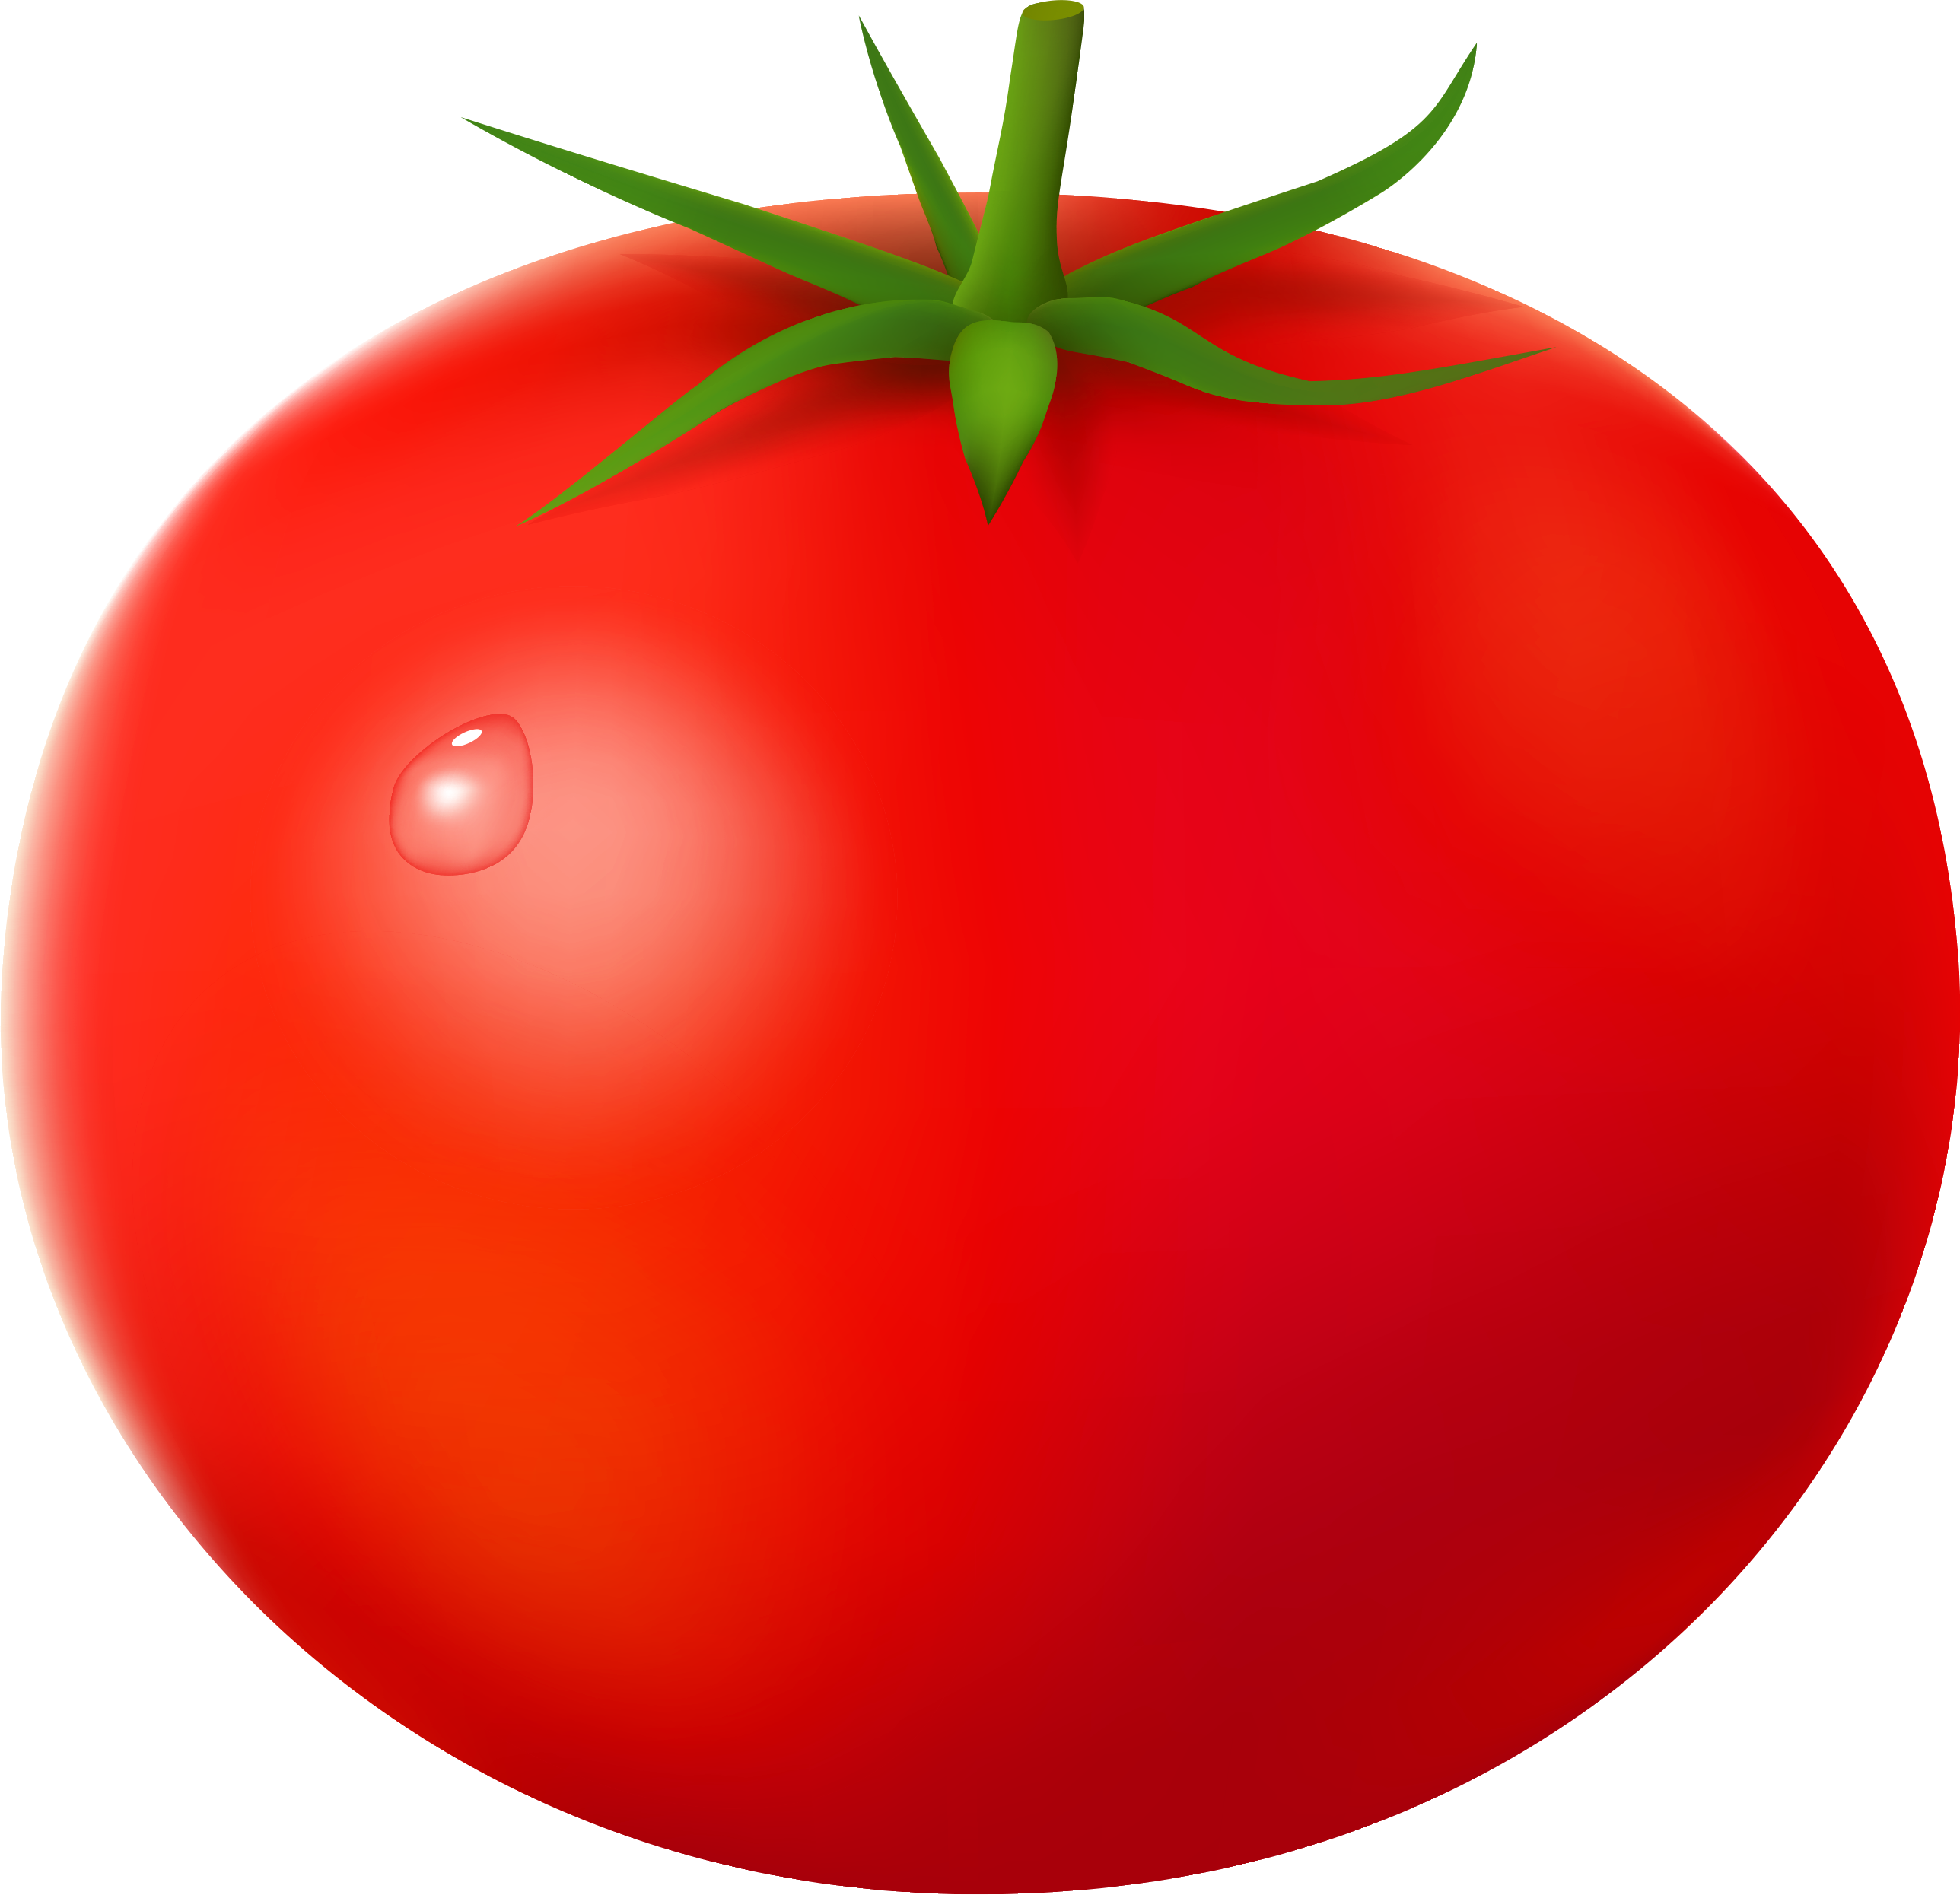 Tomato clipart two. Png images free download